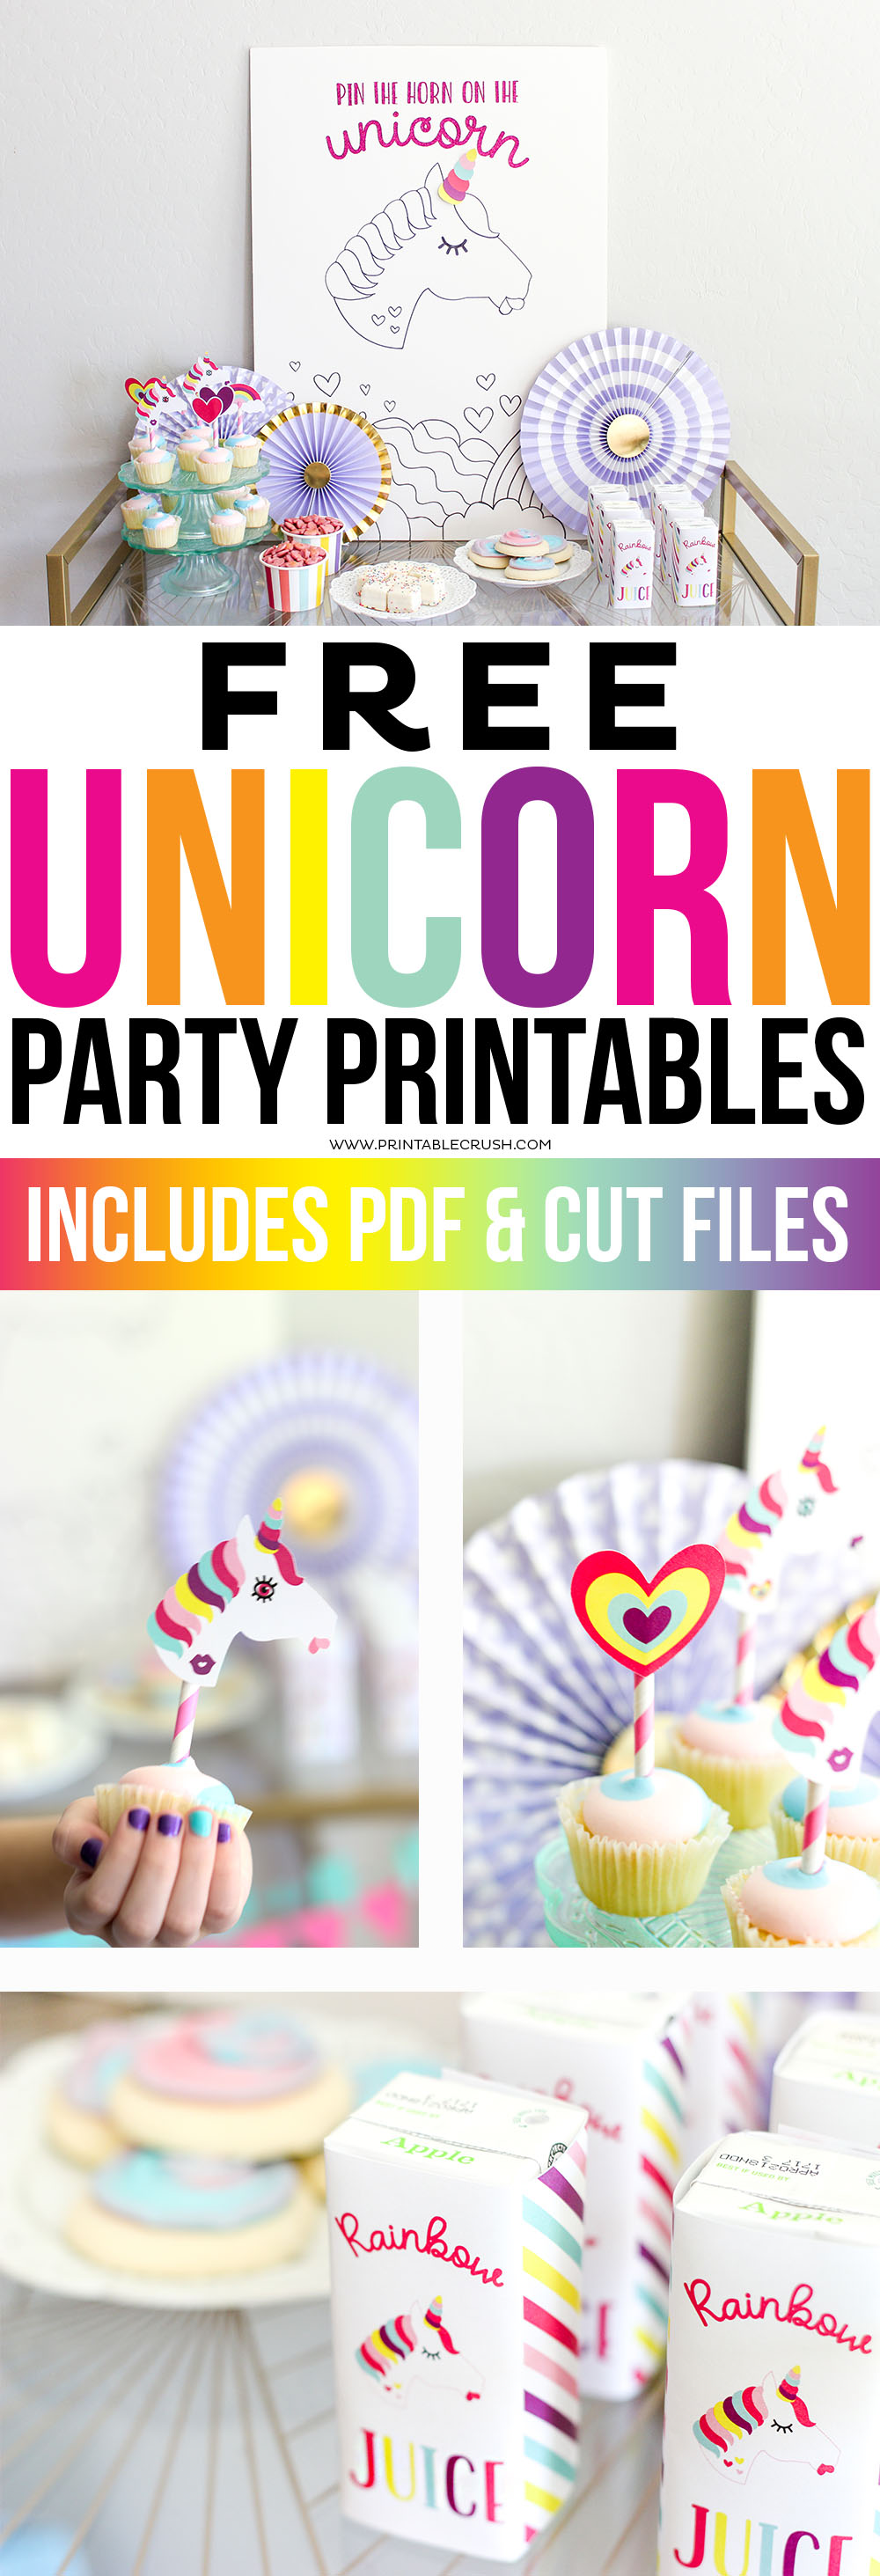 picture relating to Free Unicorn Printable identify Absolutely free Unicorn Social gathering Printables and Minimize Documents - Printable Crush